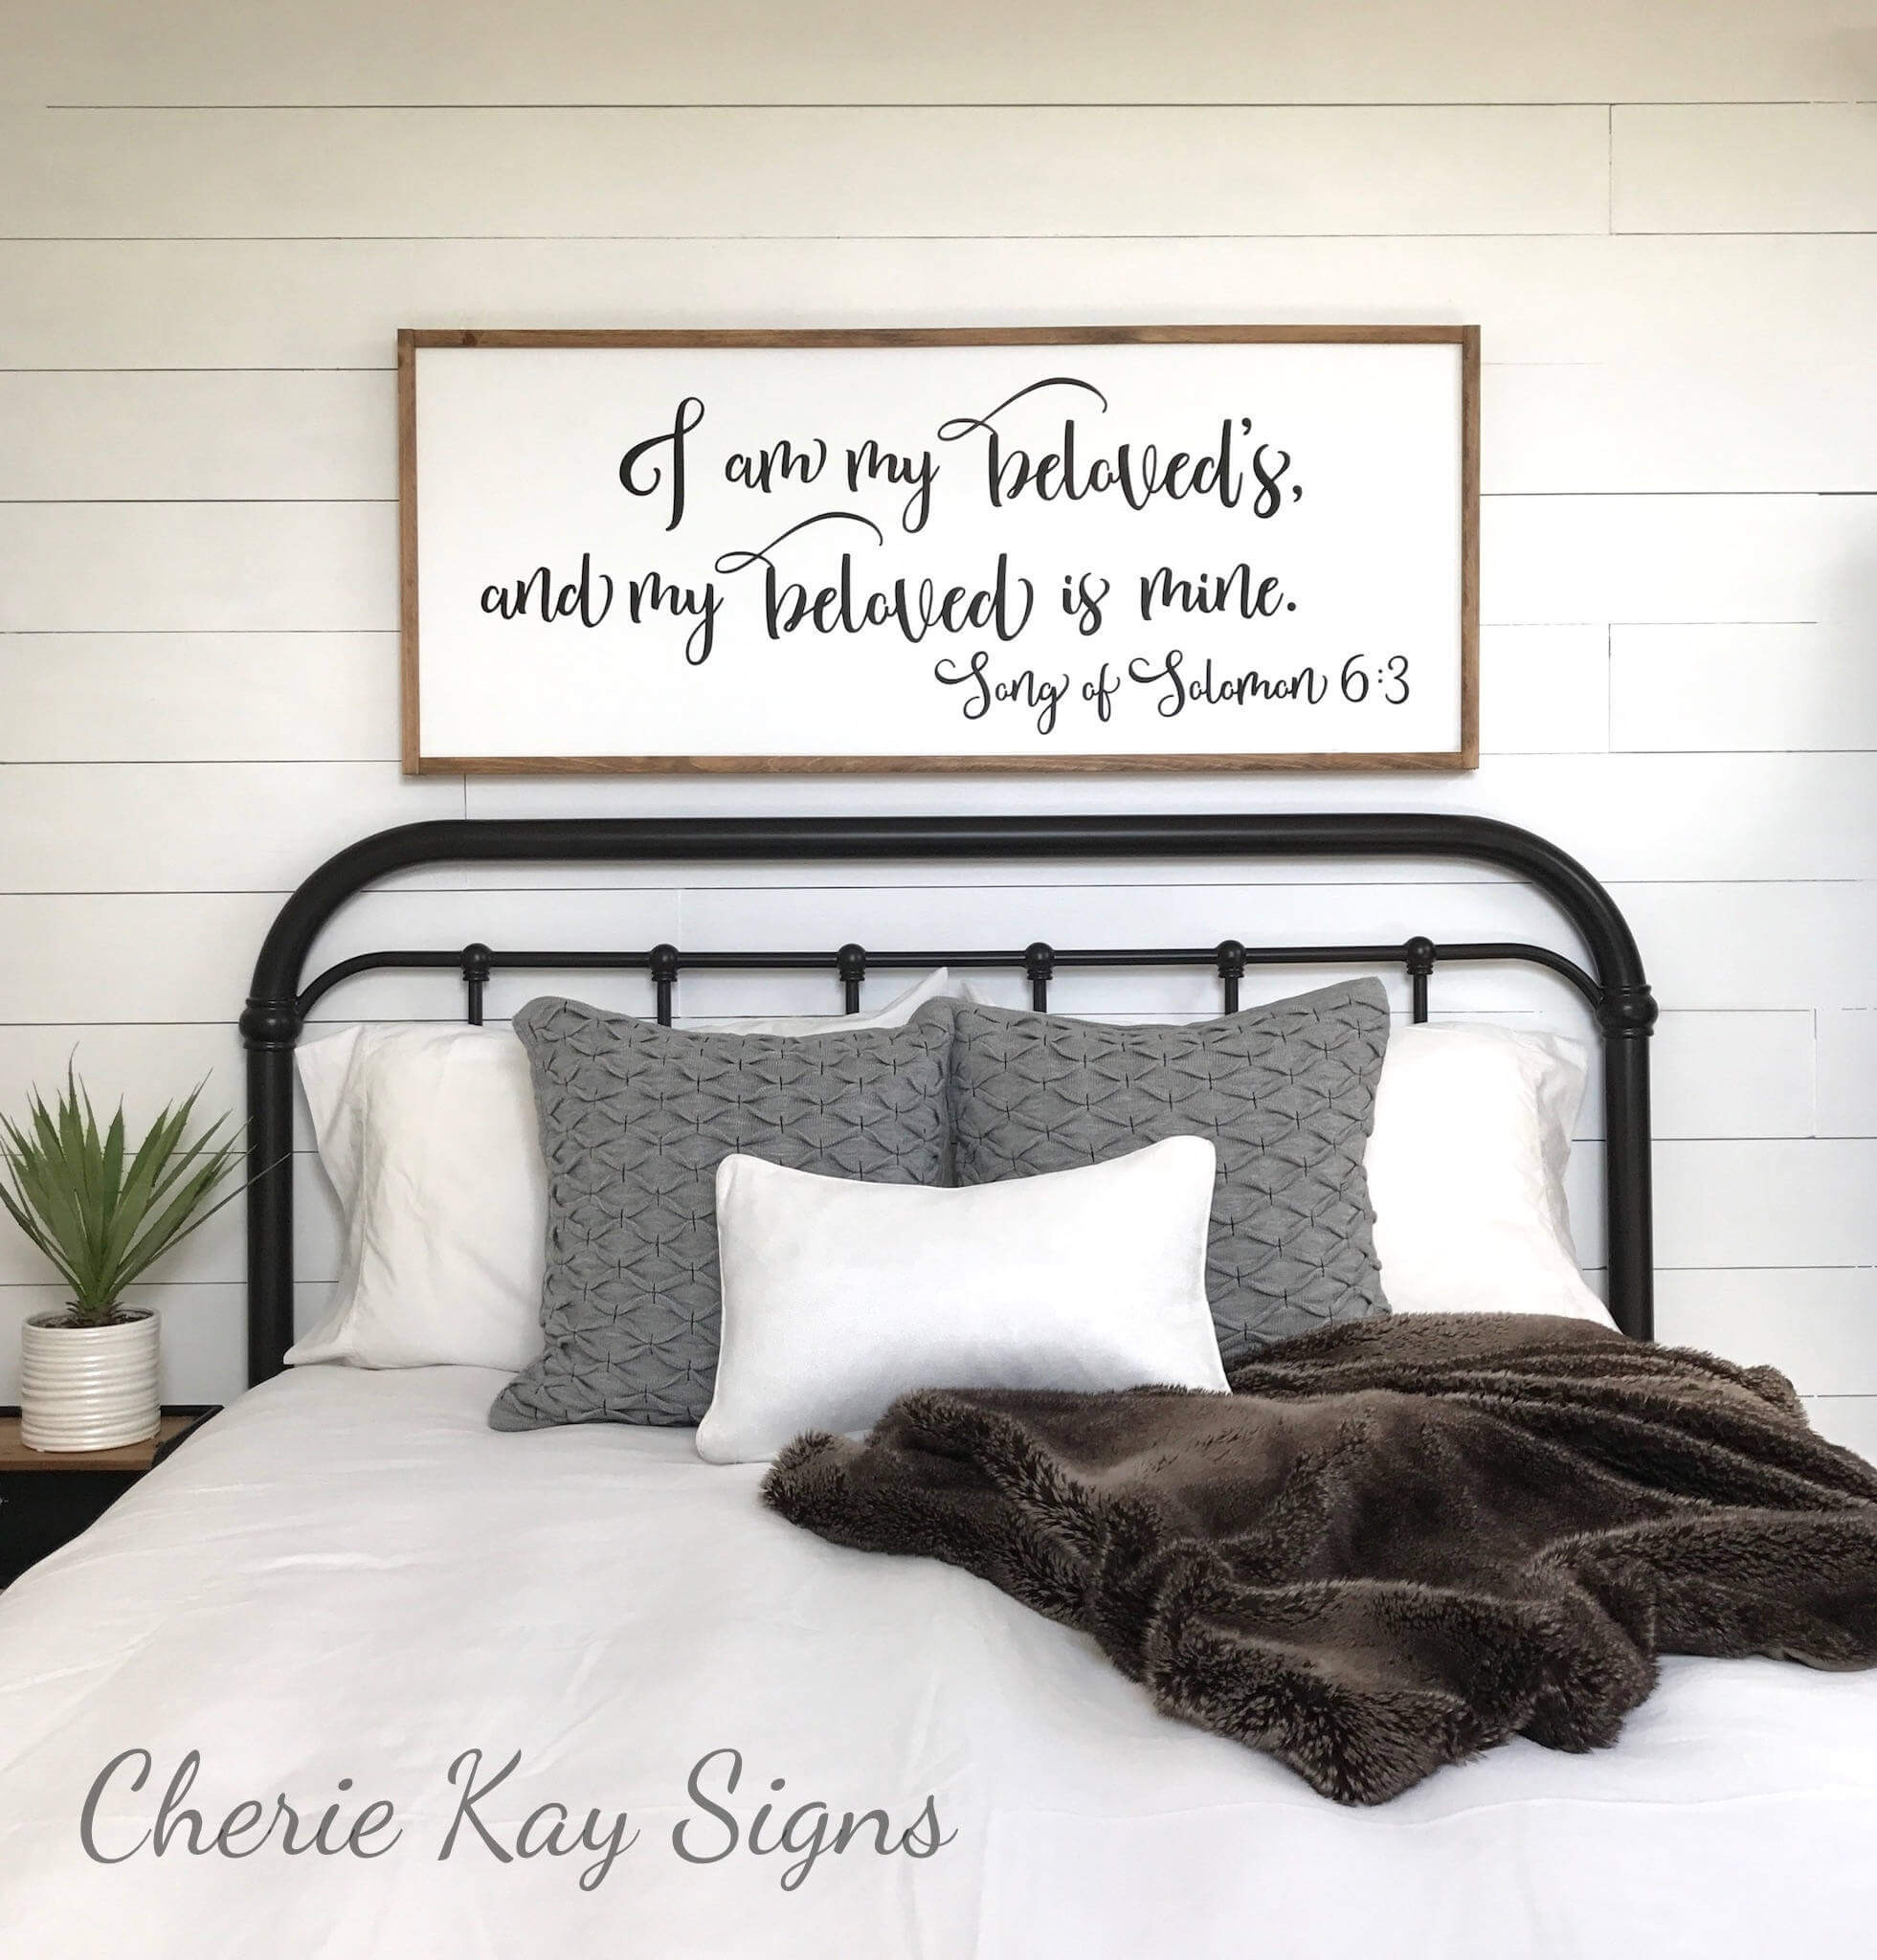 Best ideas about Wall Decor For Bedroom . Save or Pin 25 Best Bedroom Wall Decor Ideas and Designs for 2019 Now.